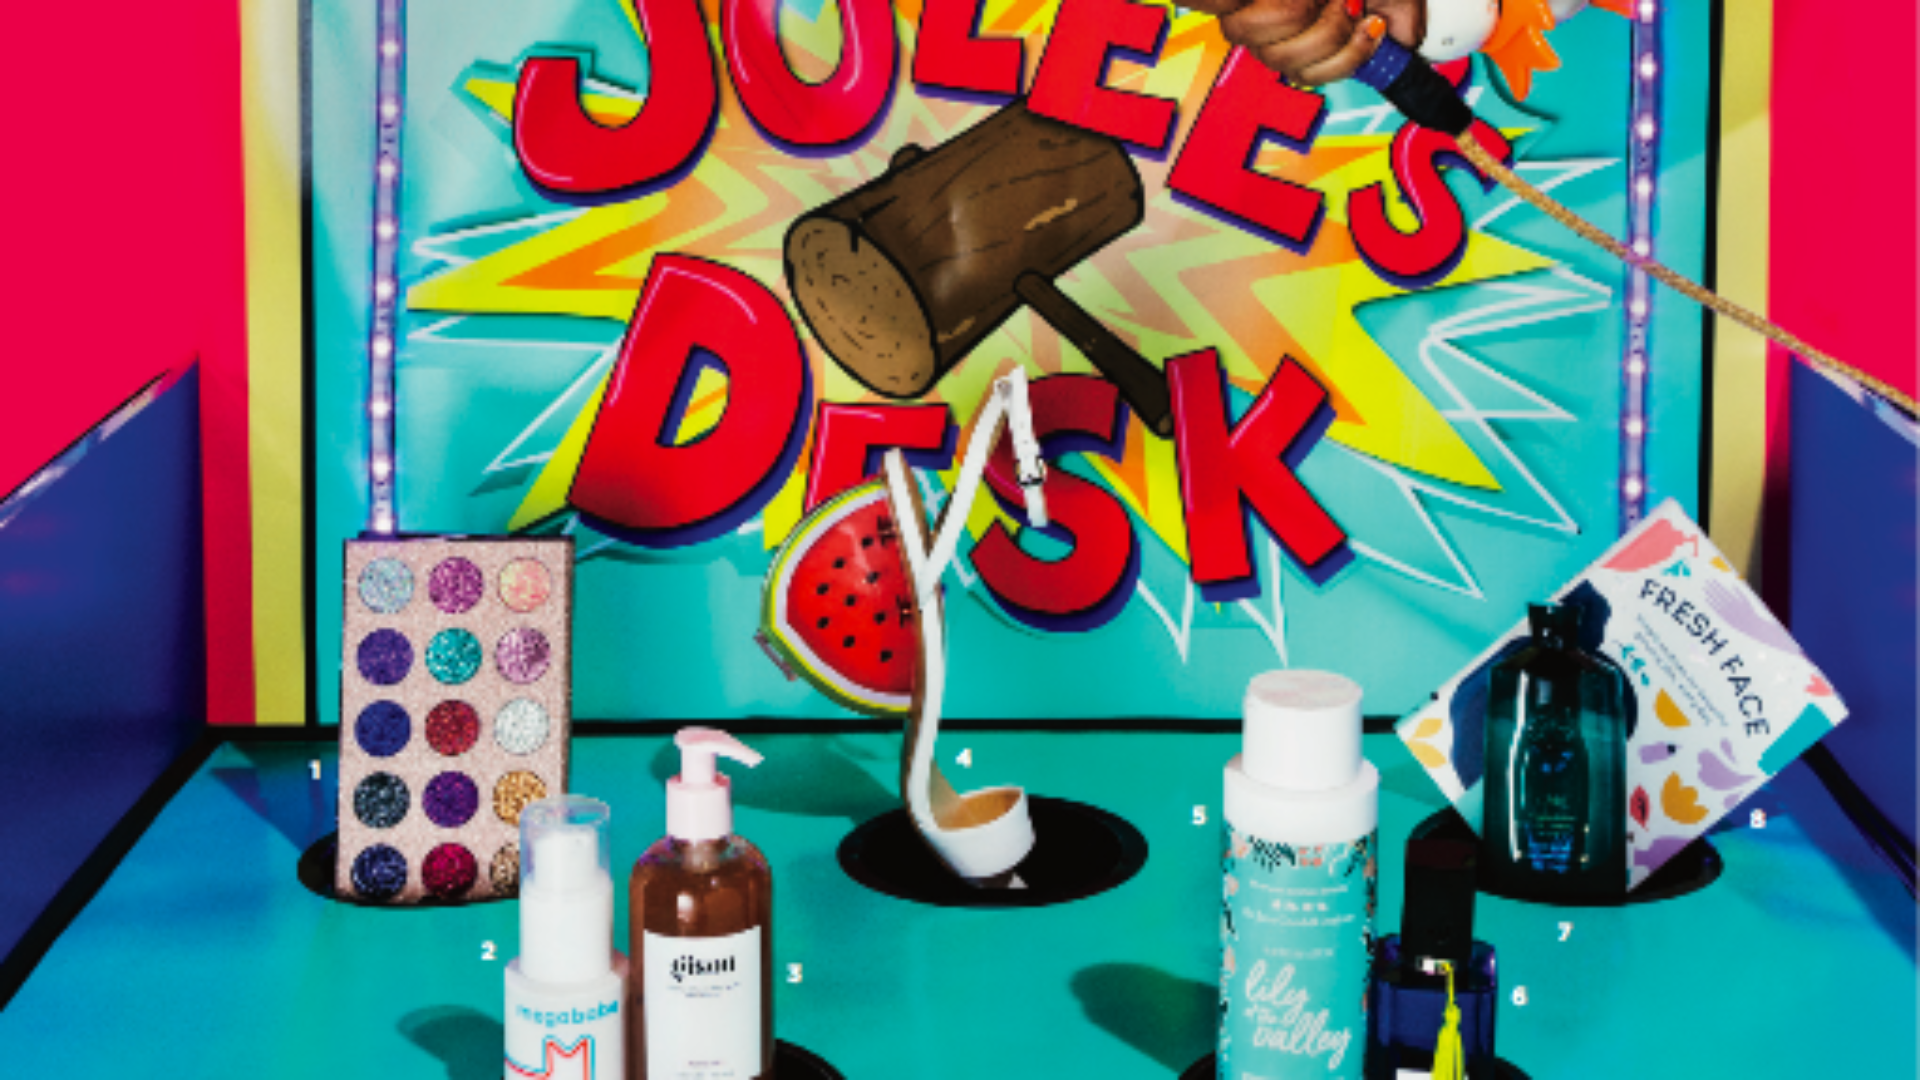 Dope Stuff On My Desk: Score Big This Summer With These Spectacular Finds